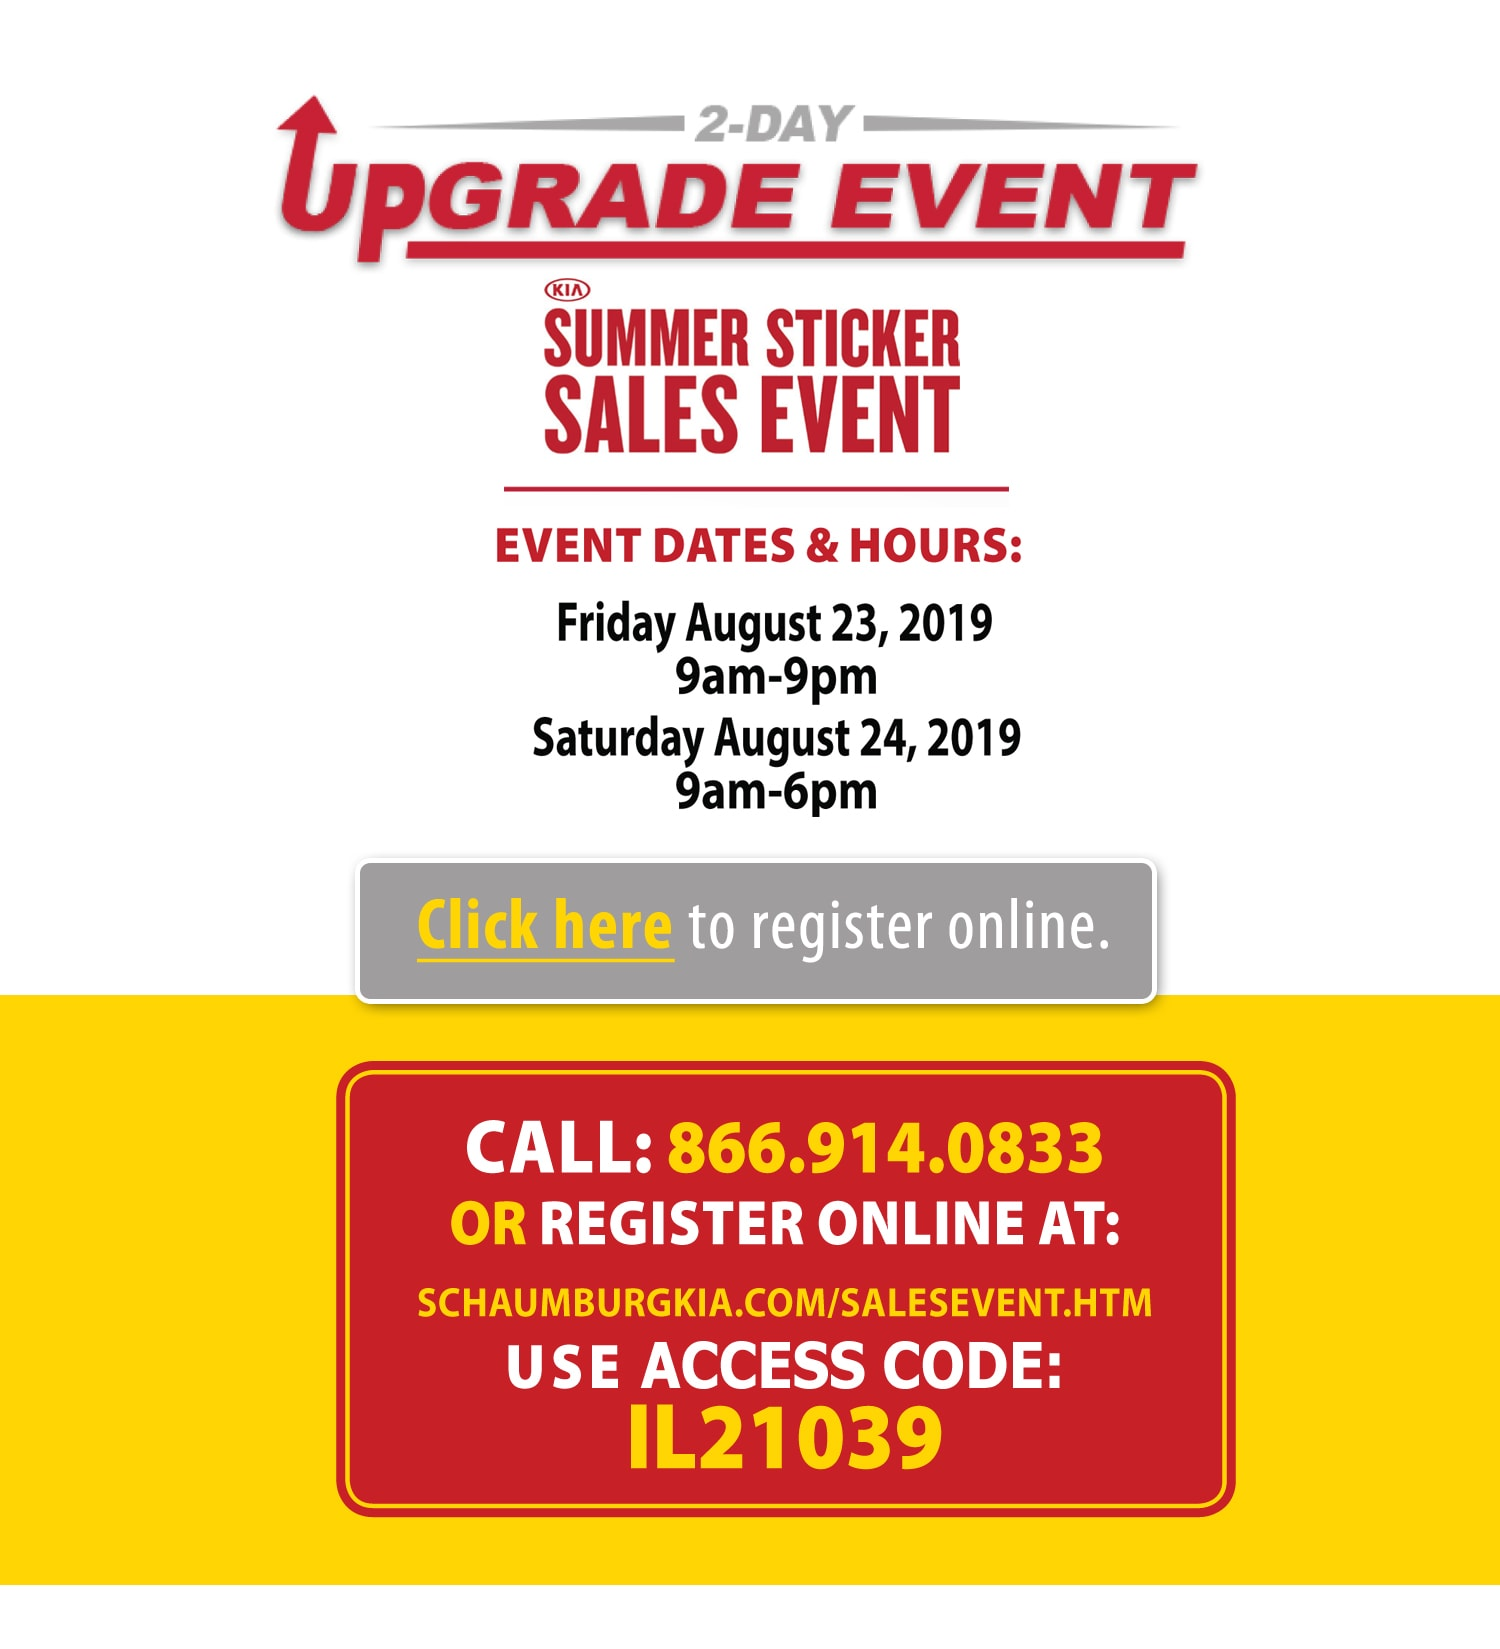 2-Day Upgrade Event - Summer Sticker Sales Event